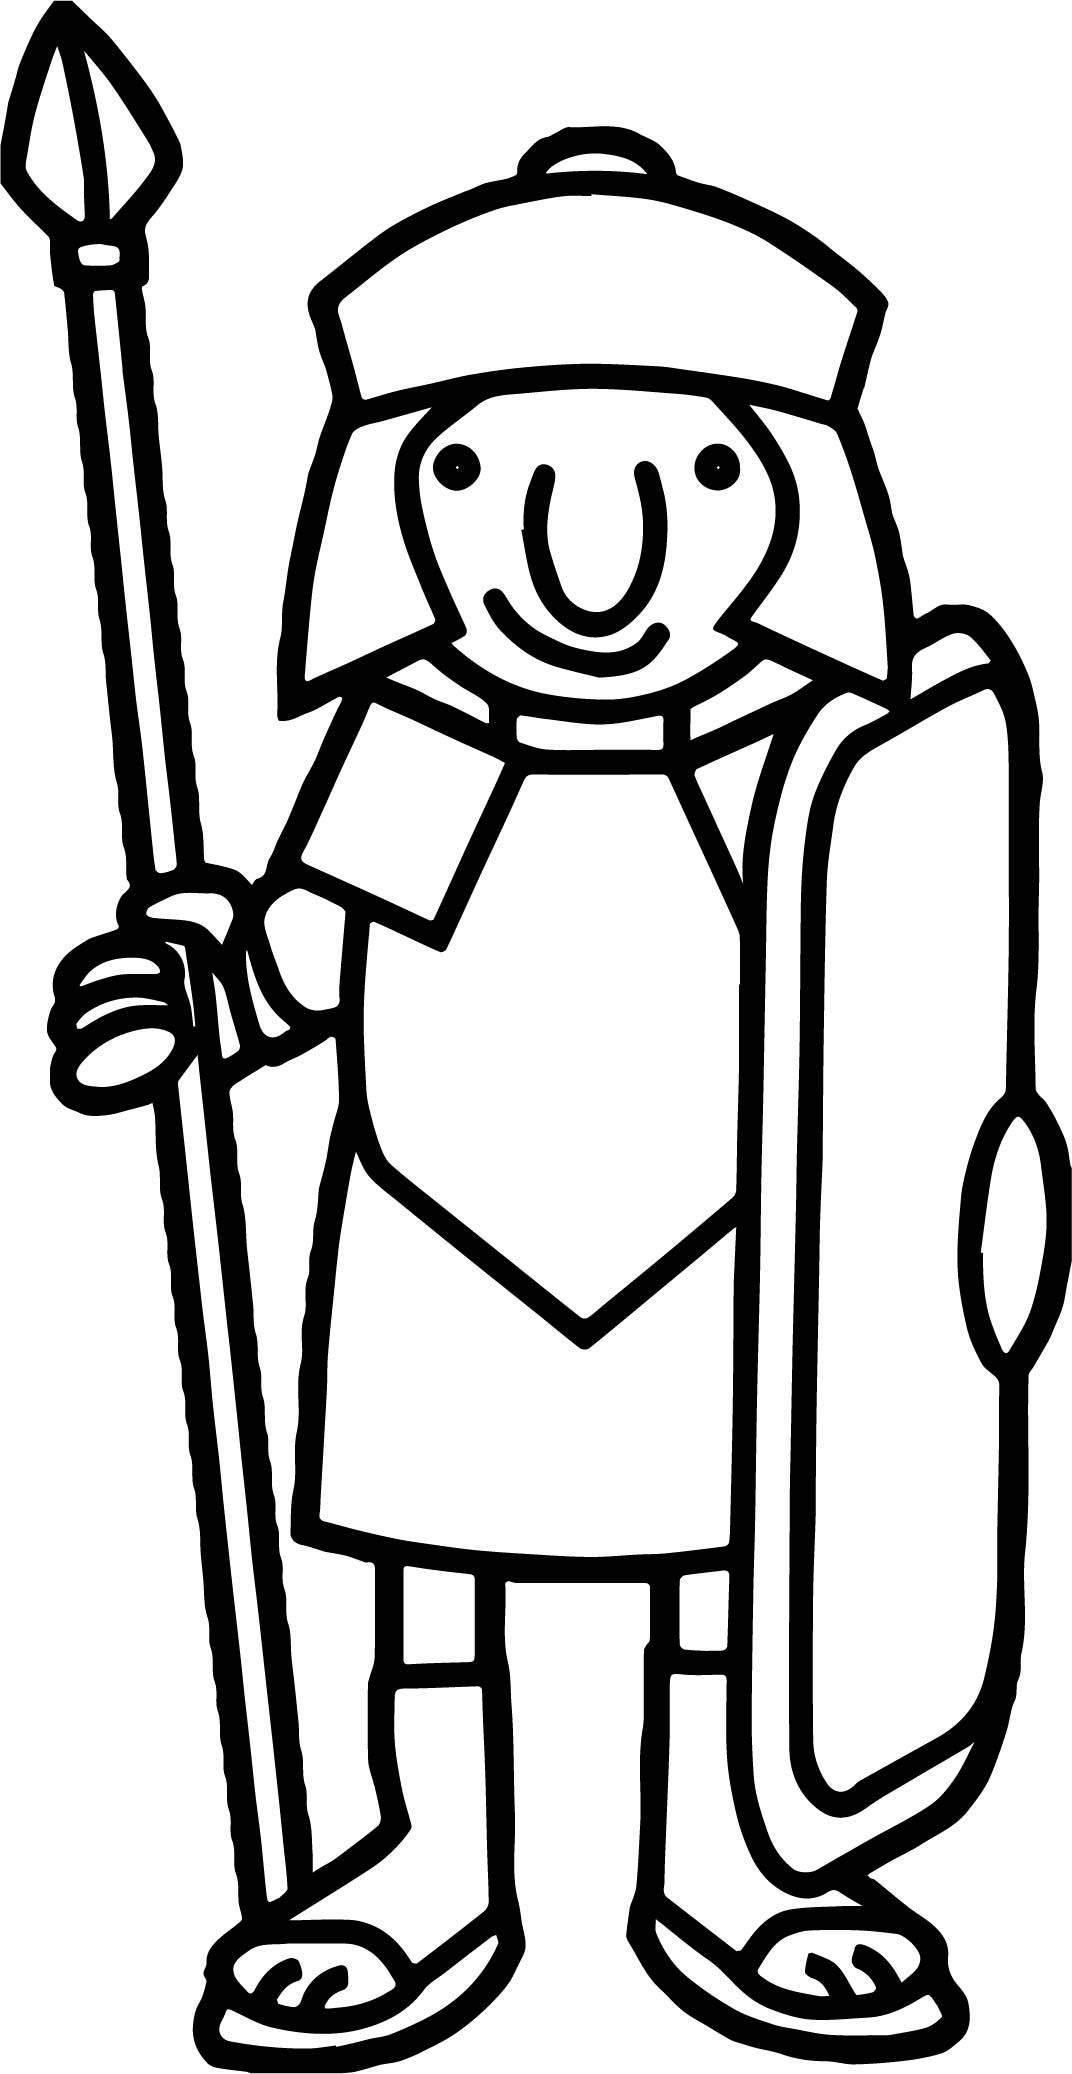 Basic Roman Soldier Coloring Page | Roman soldiers